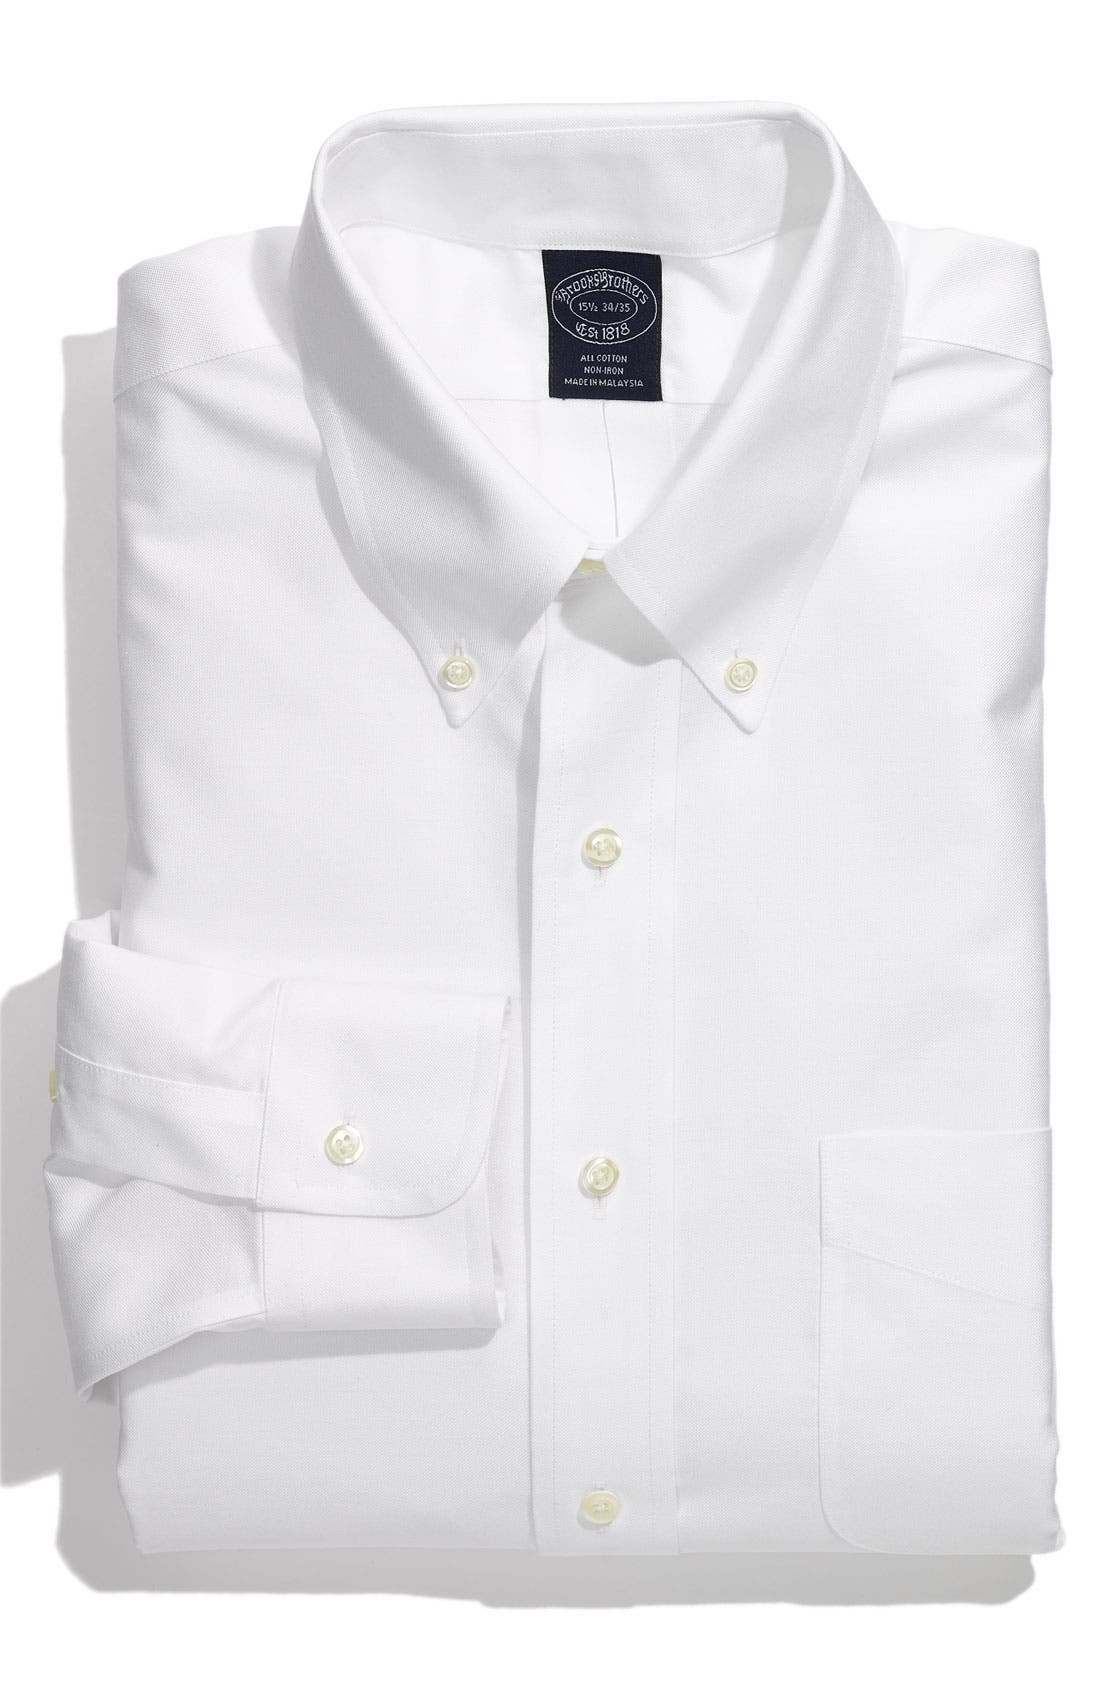 Main Image - Brooks Brothers Non-Iron Oxford Dress Shirt